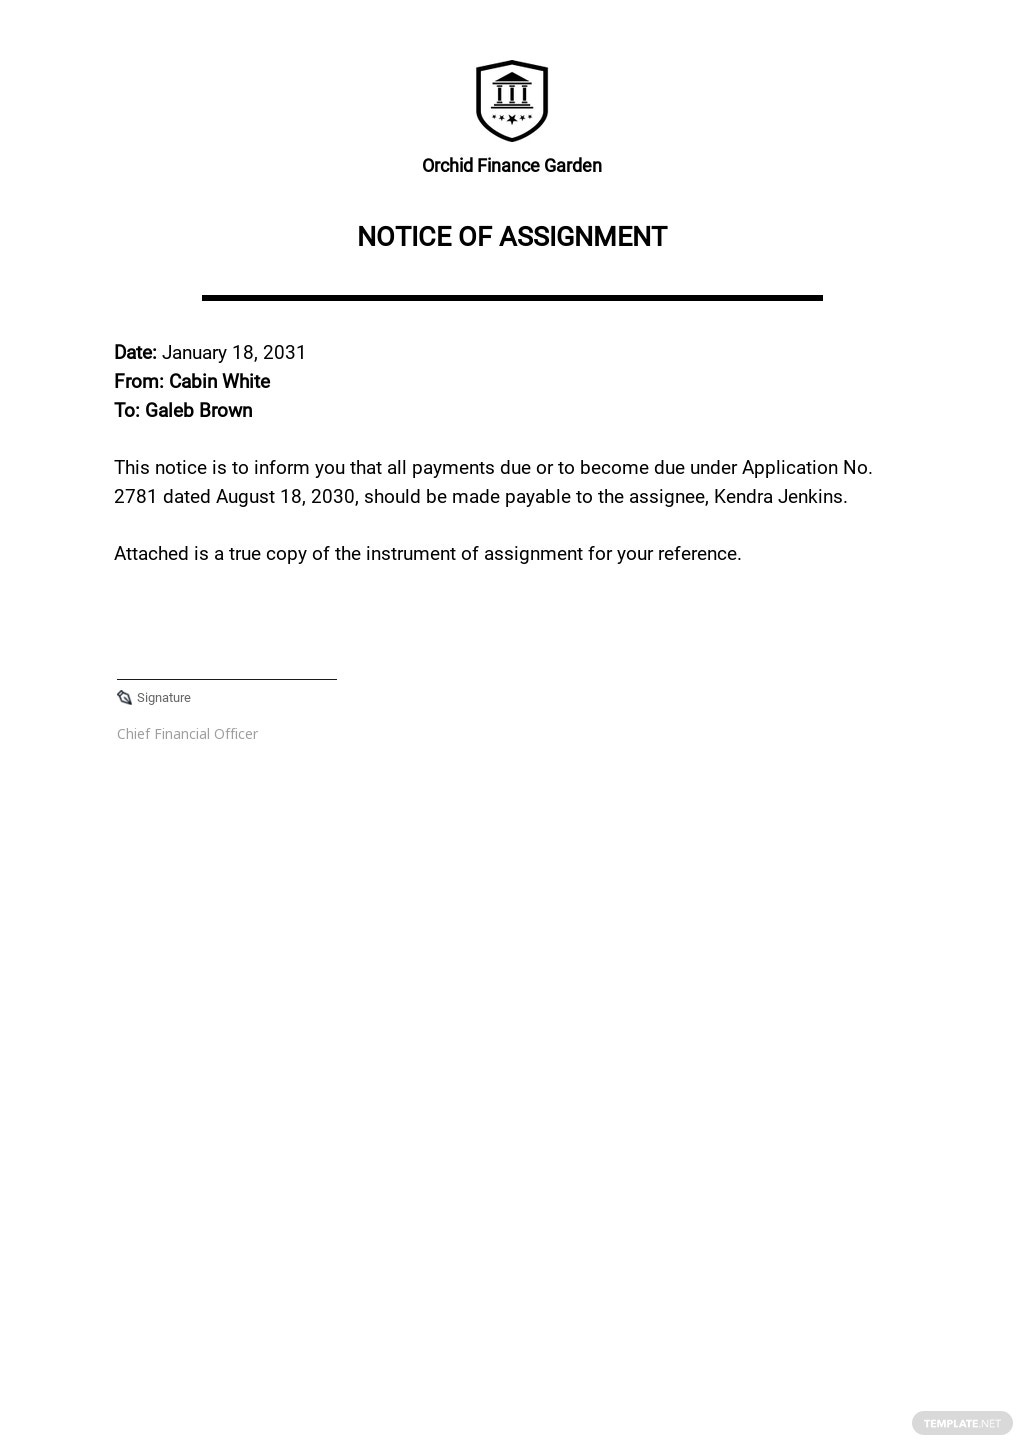 Notice of Assignment Template.jpe